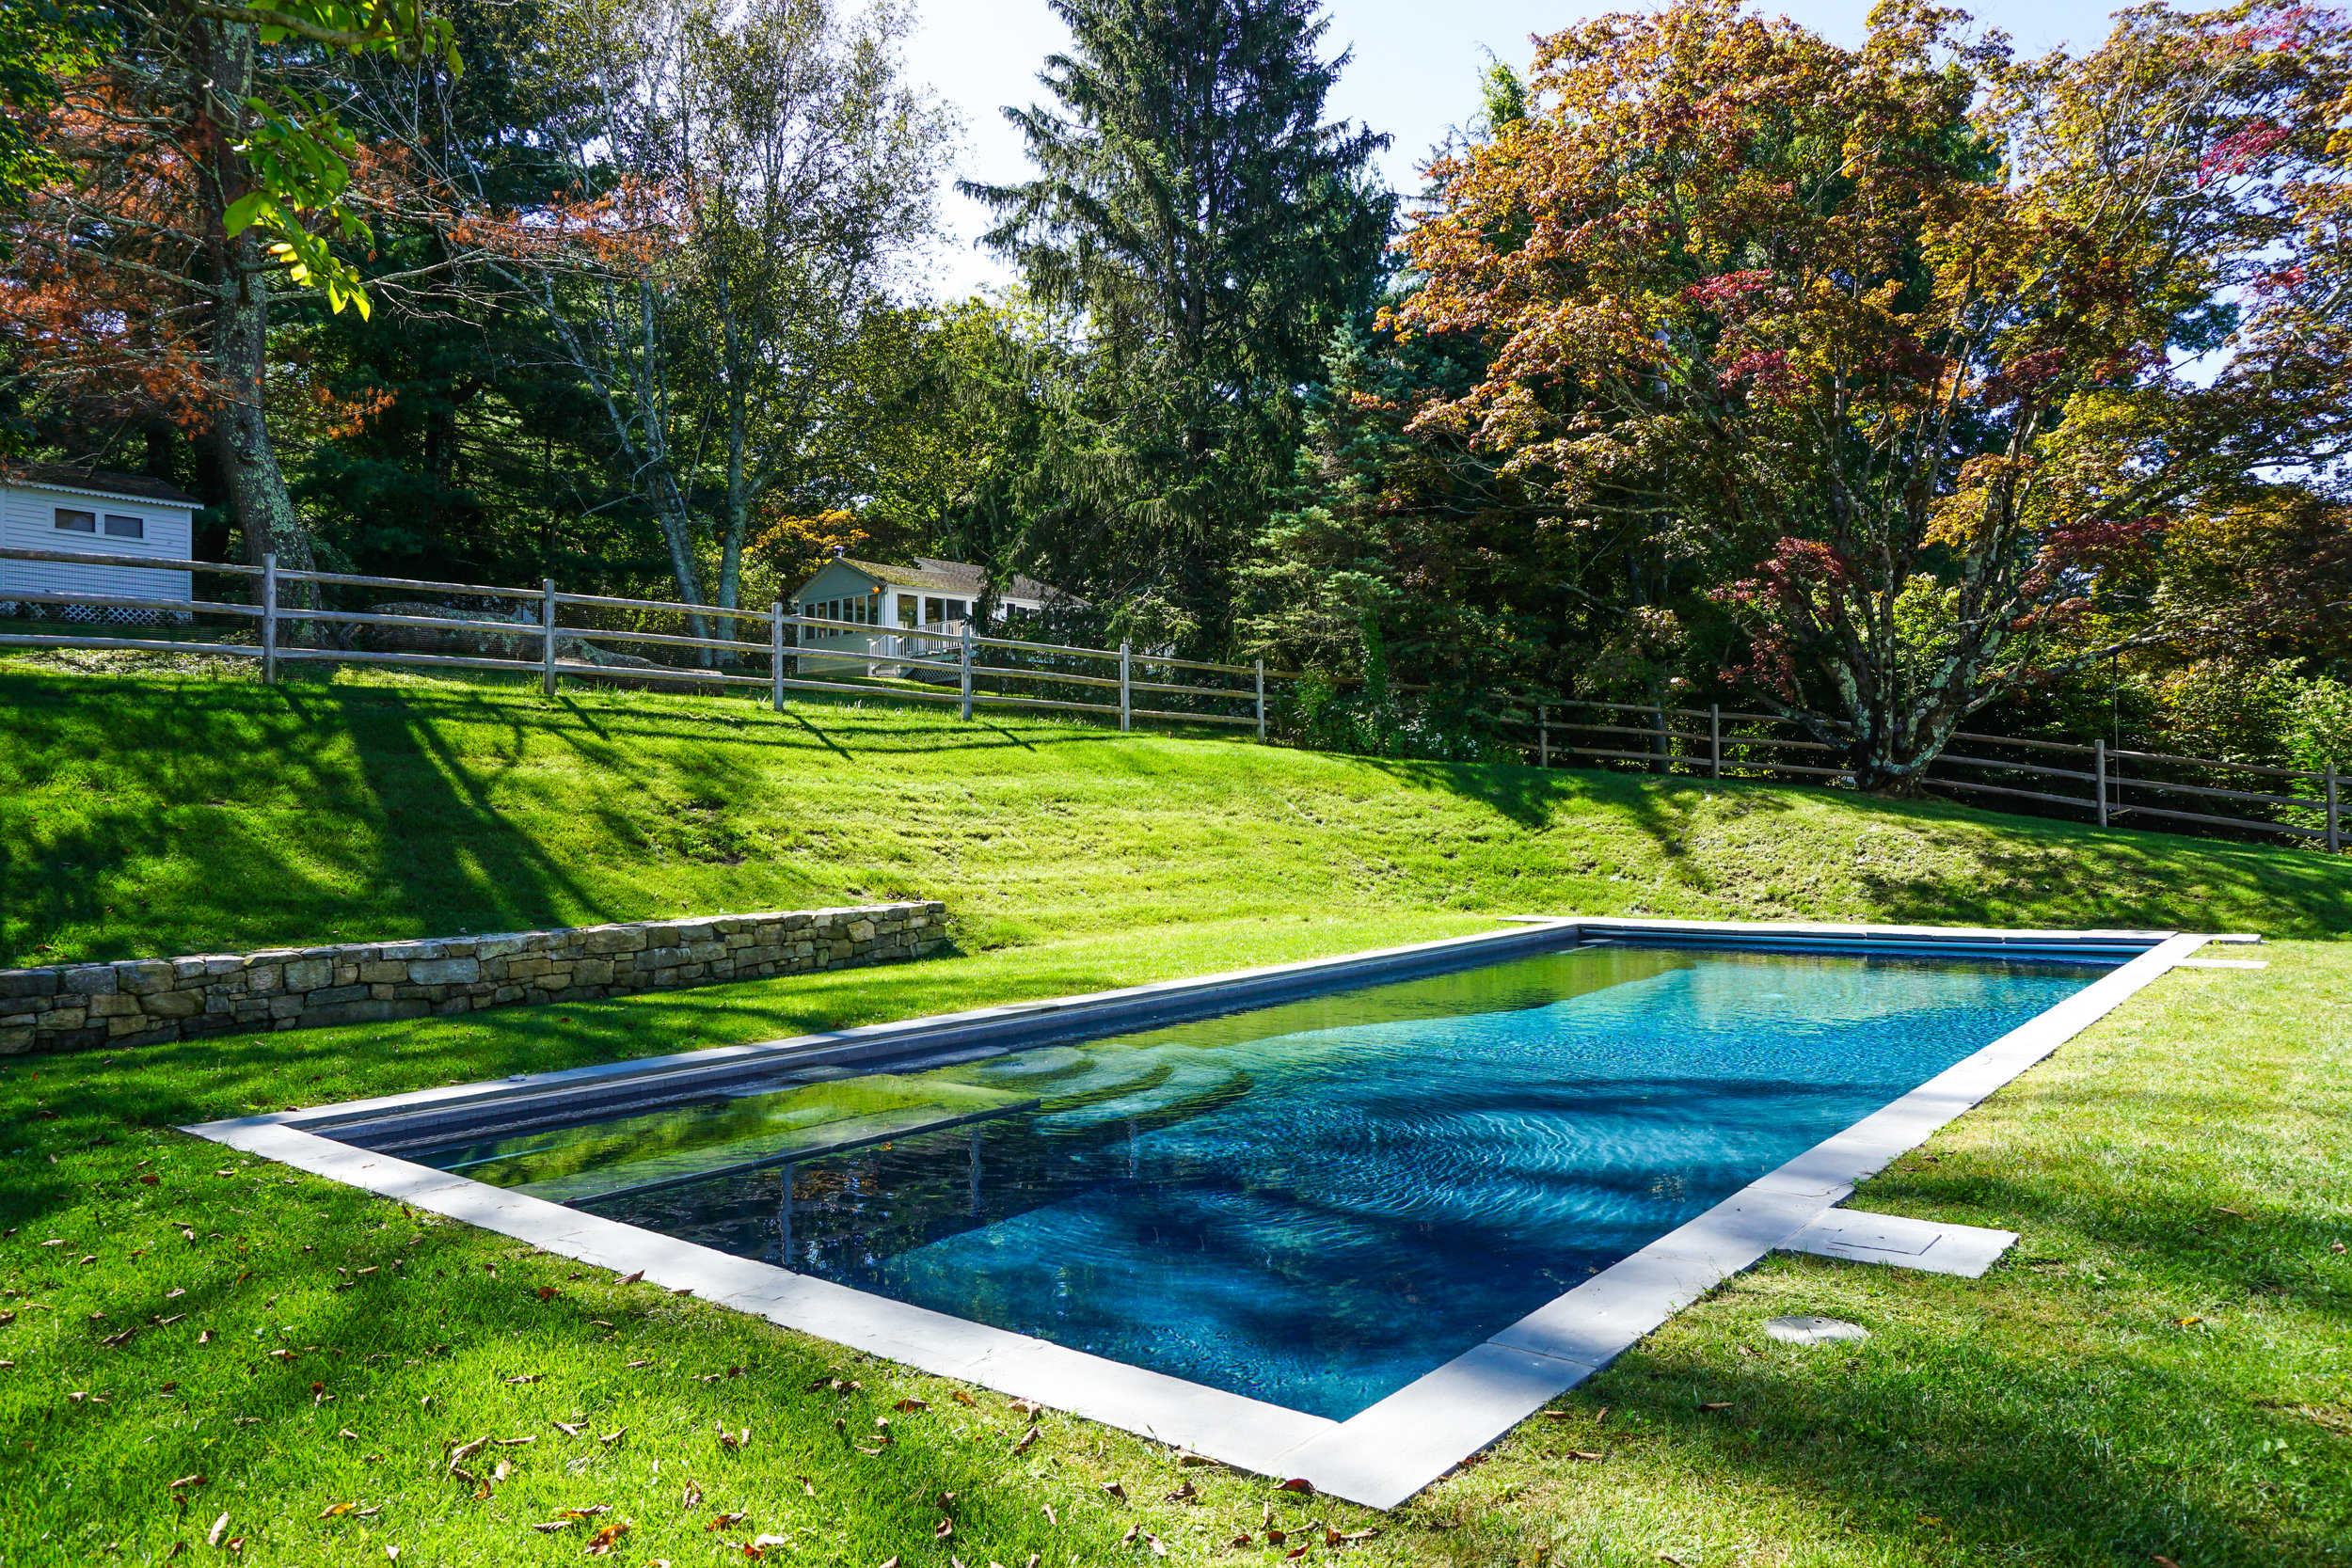 In-ground gunite swimming pool and spa